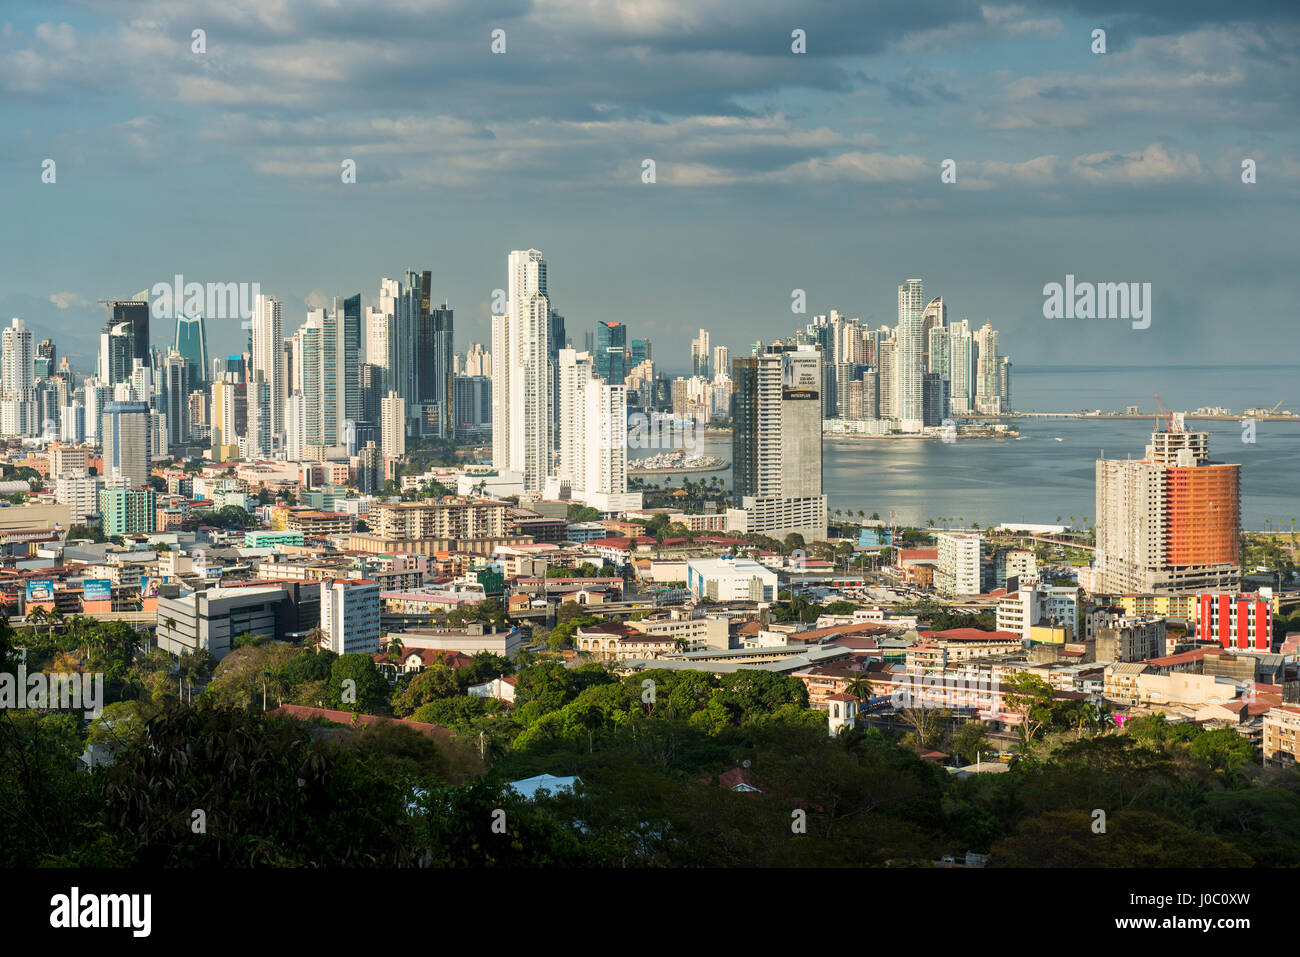 View over Panama City from El Ancon, Panama, Central America - Stock Image